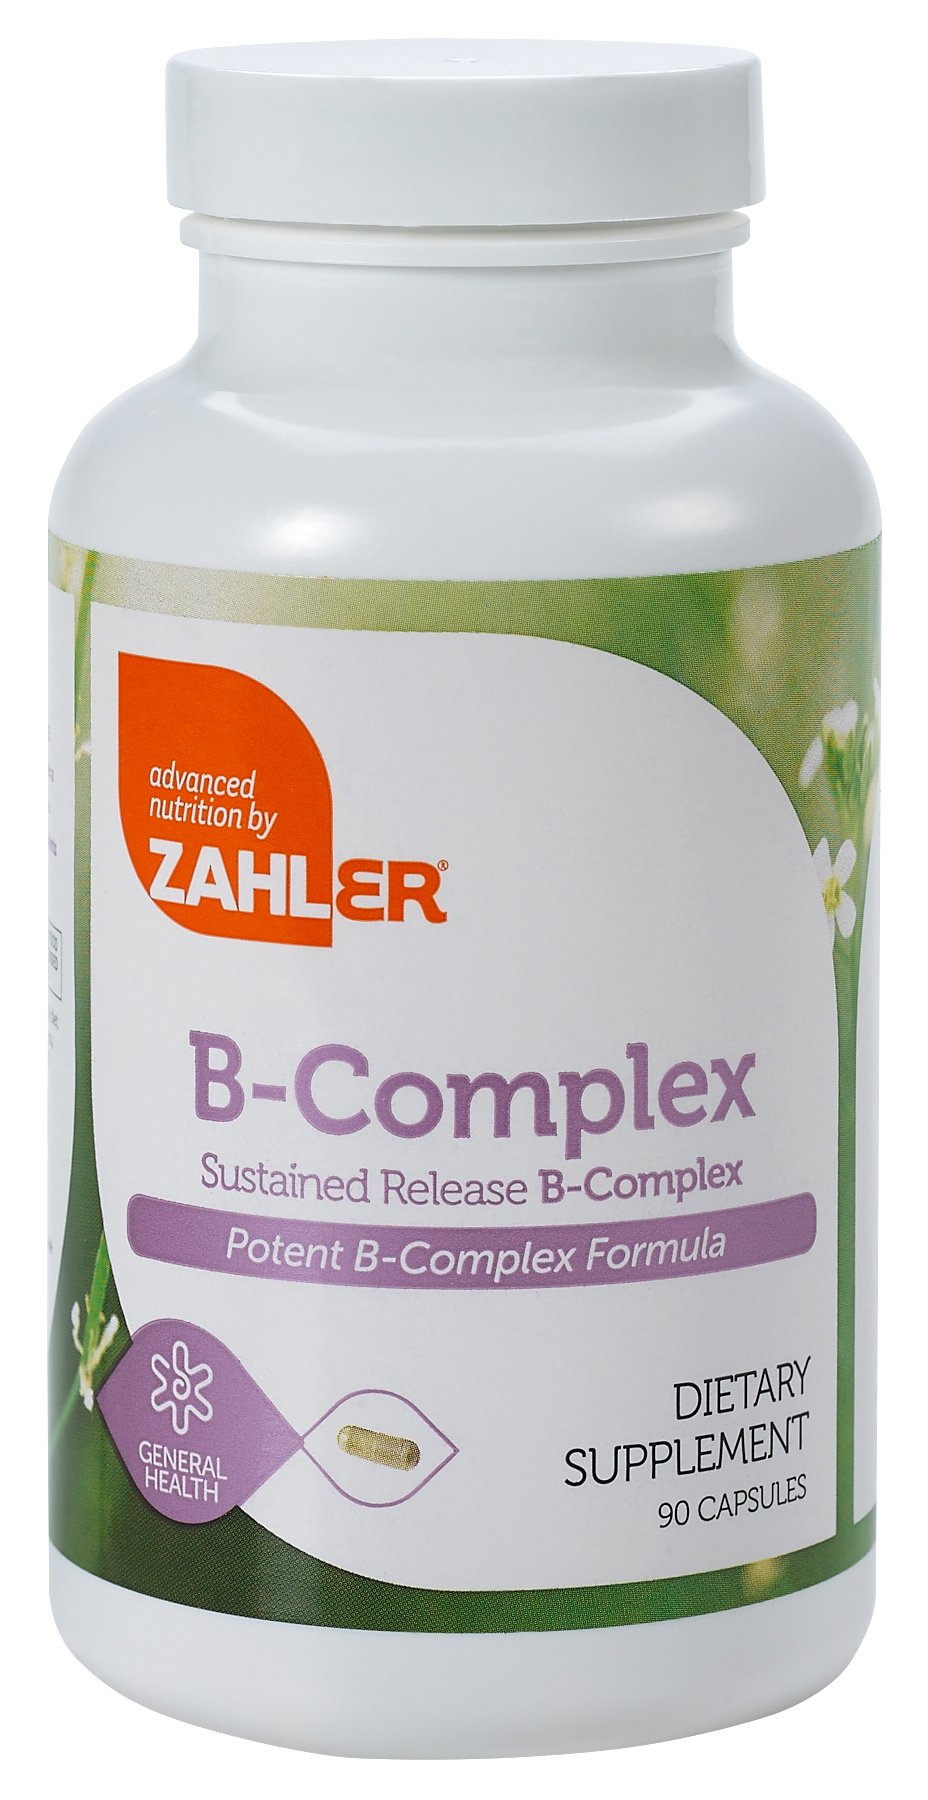 Zahler B Complex, All Natural Supplement Supporting Energy Production, #1 Pure and Potent B Complex Formula Containing all 8 Essential B Vitamins, Certified Kosher, 90 Capsules